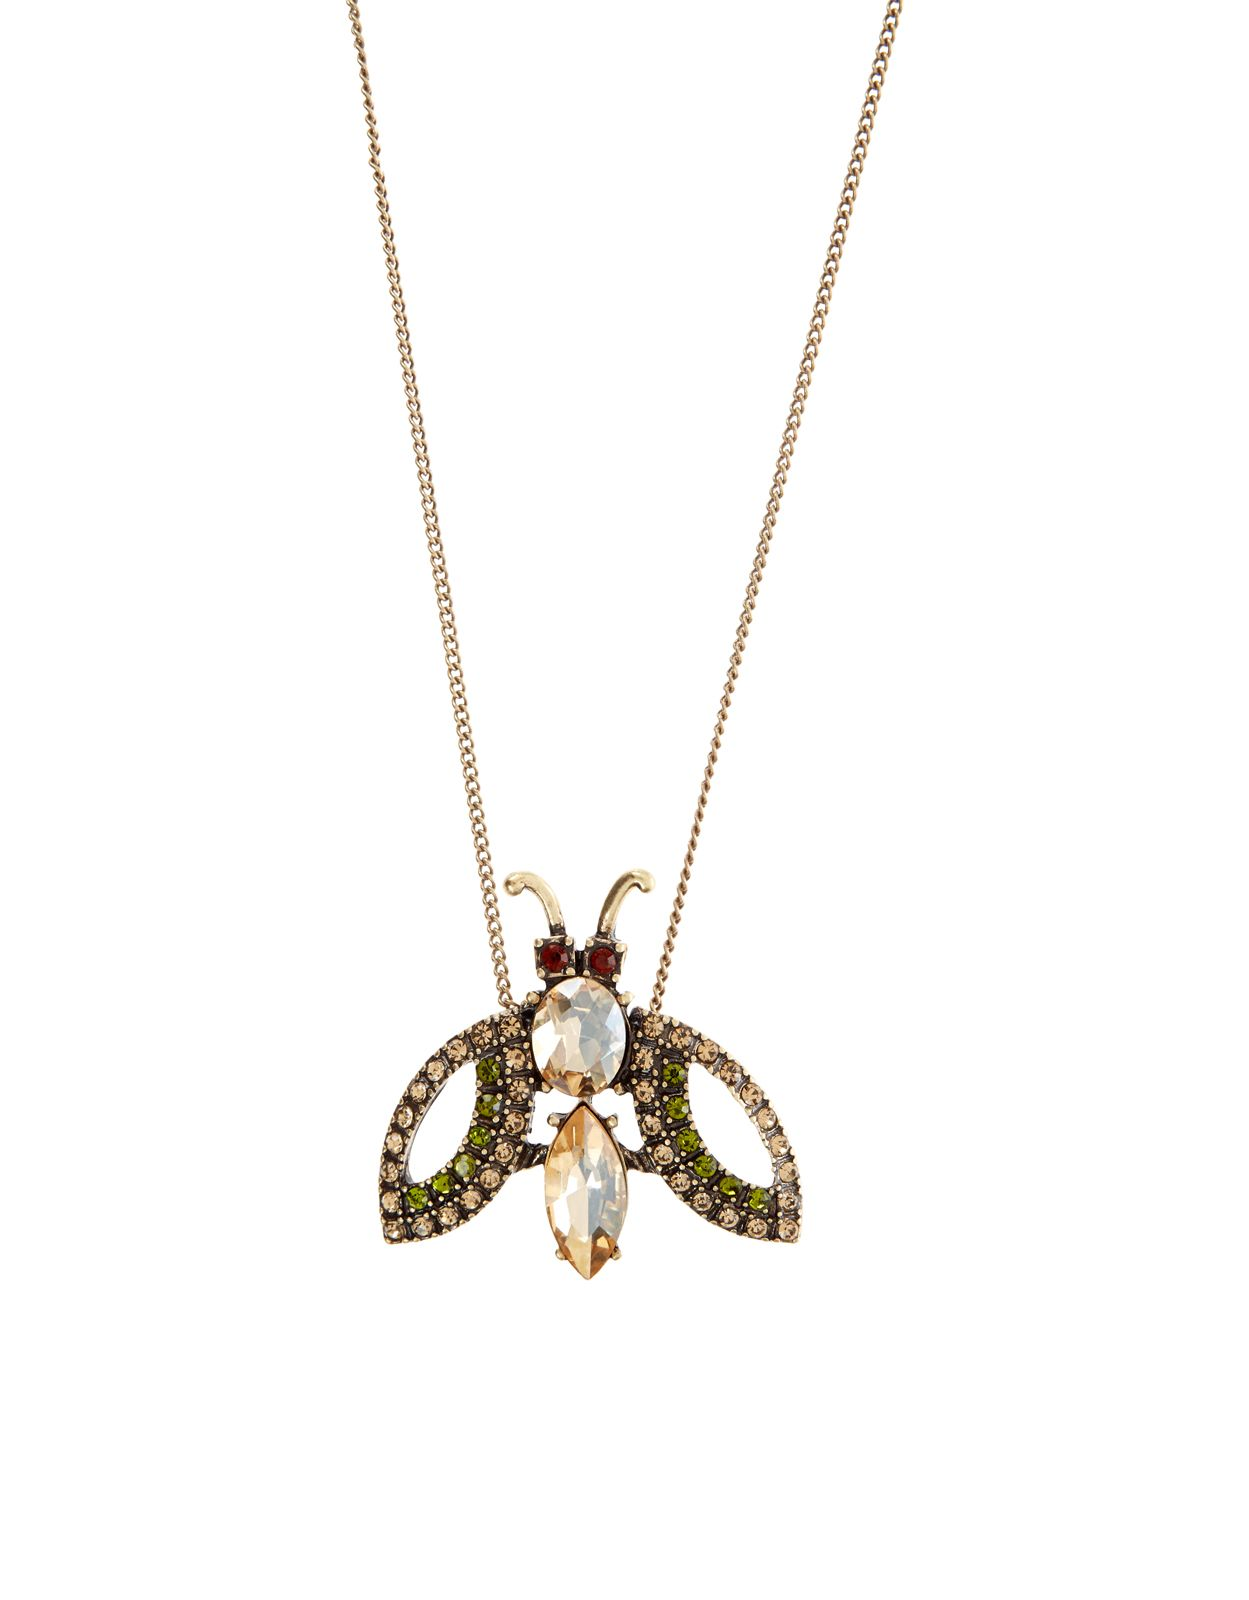 Create a buzz around your outfit with our jewelled bug necklace